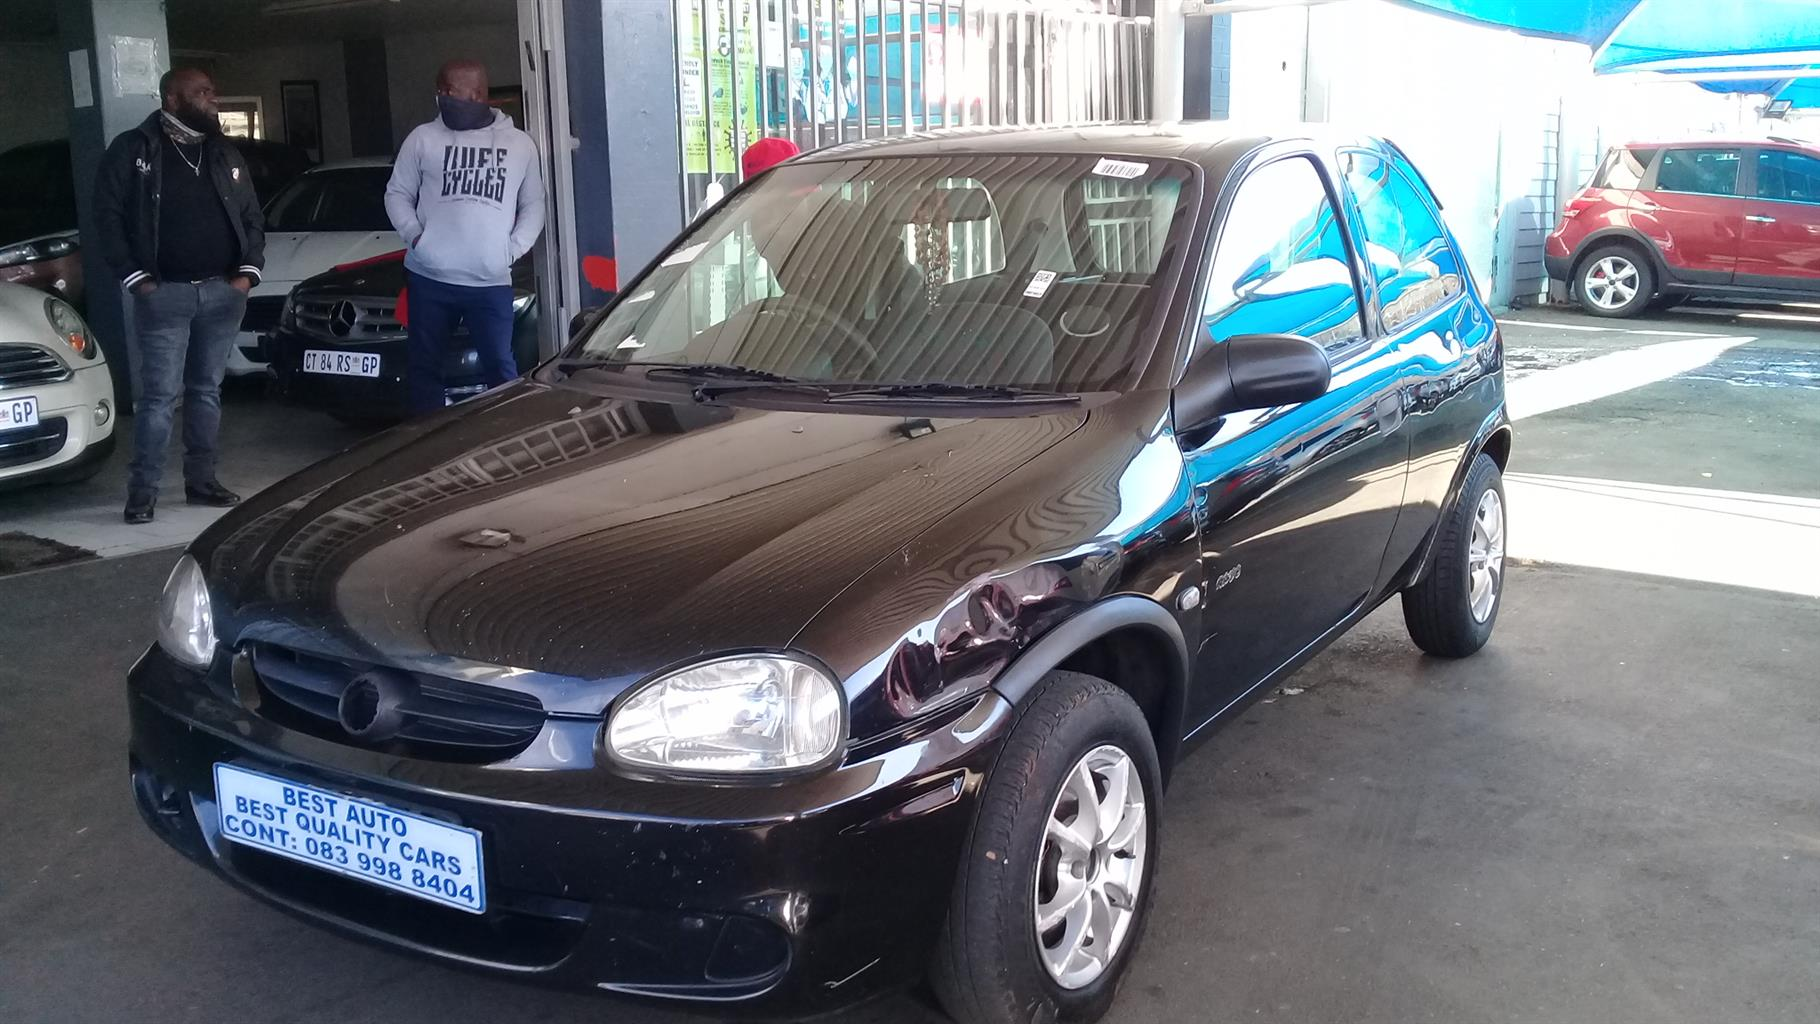 2006 Opel Corsa Lite 1.4 Engine Capacity with Manuel Transmission